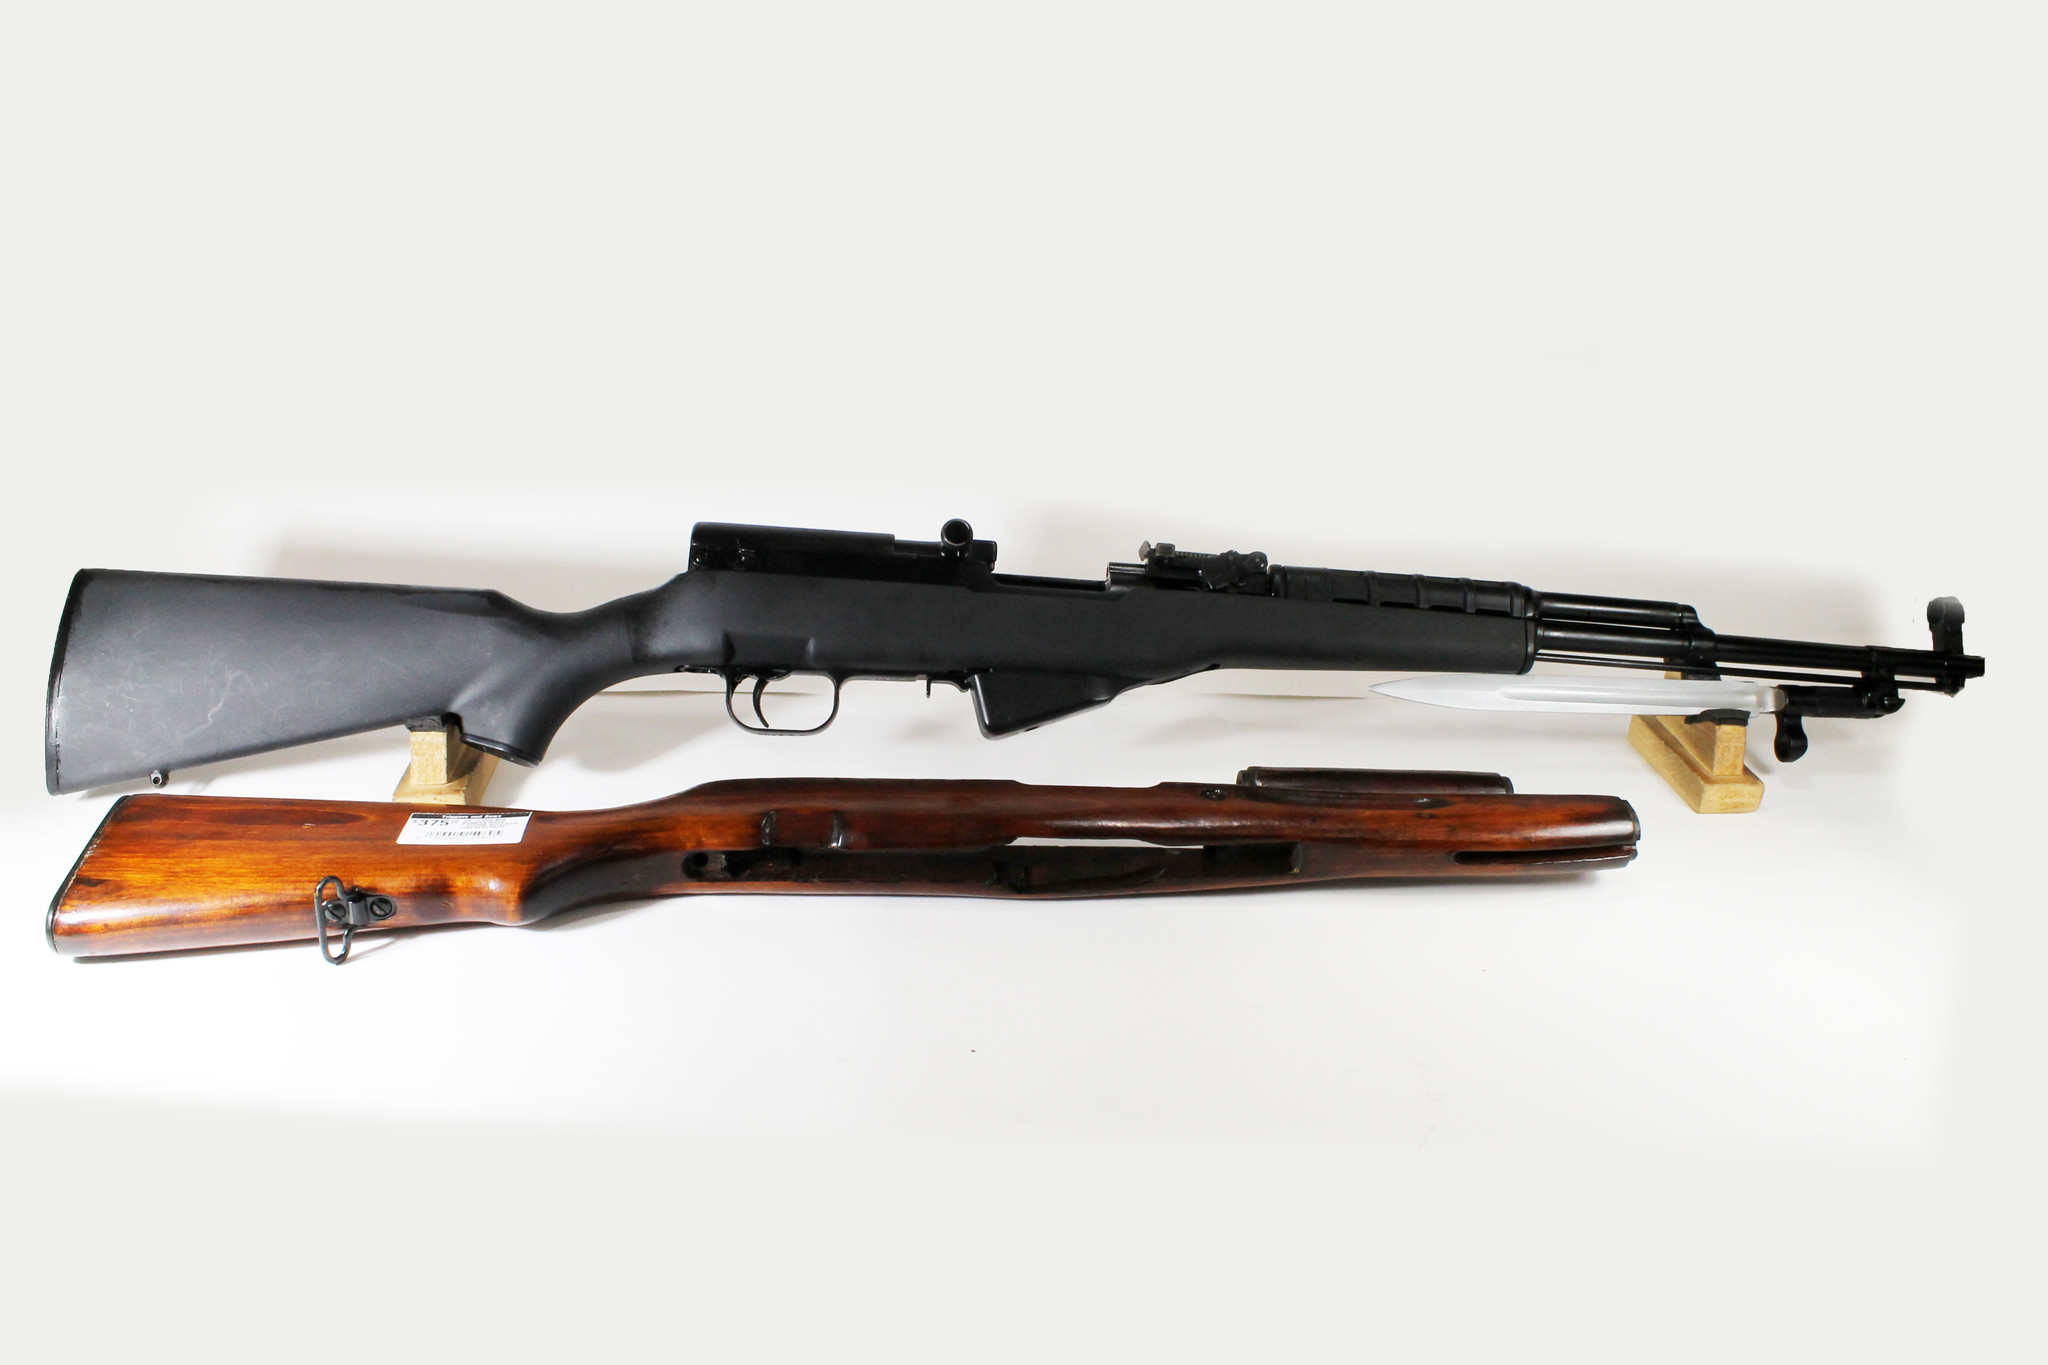 UG-13082 USED SKS Russian Rifle 7.62x39R w/ Ram Line Synthetic Stock and Original Stock